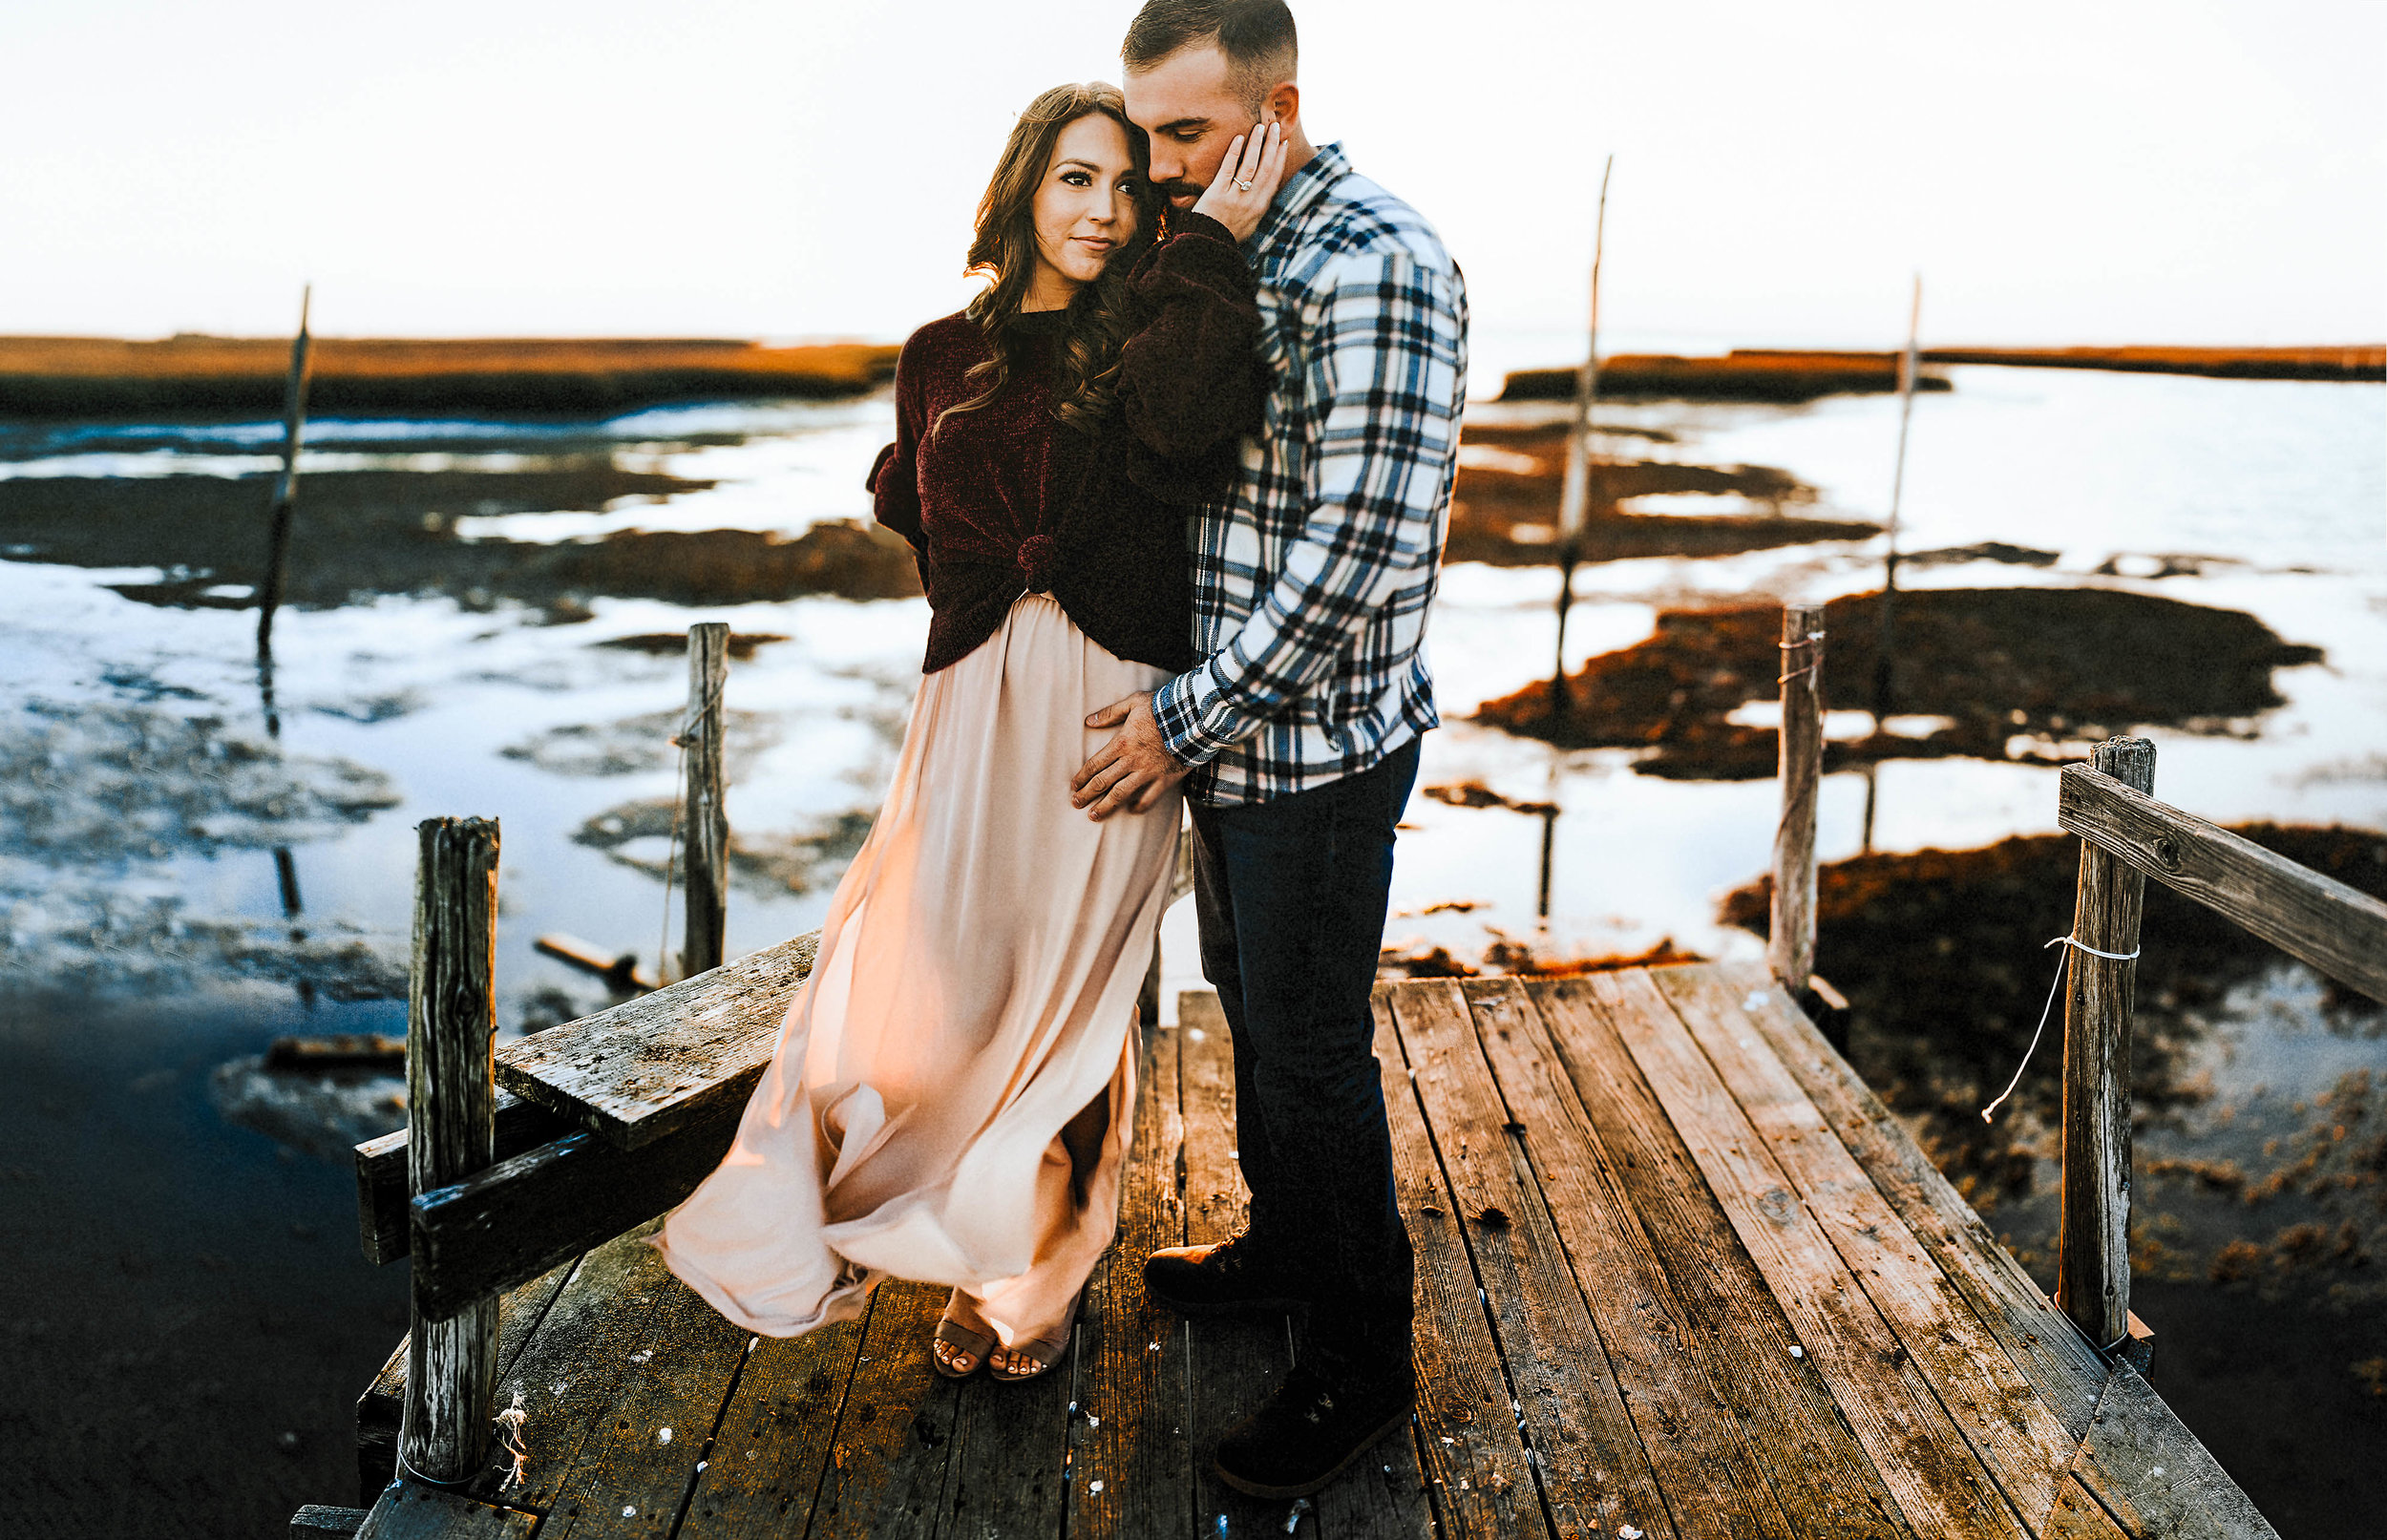 Our Engagement Photos | Pine Barren Beauty | engagement photos, engagement photo ideas, what to wear for fall engagement photos, wedding inspiration, bride to be